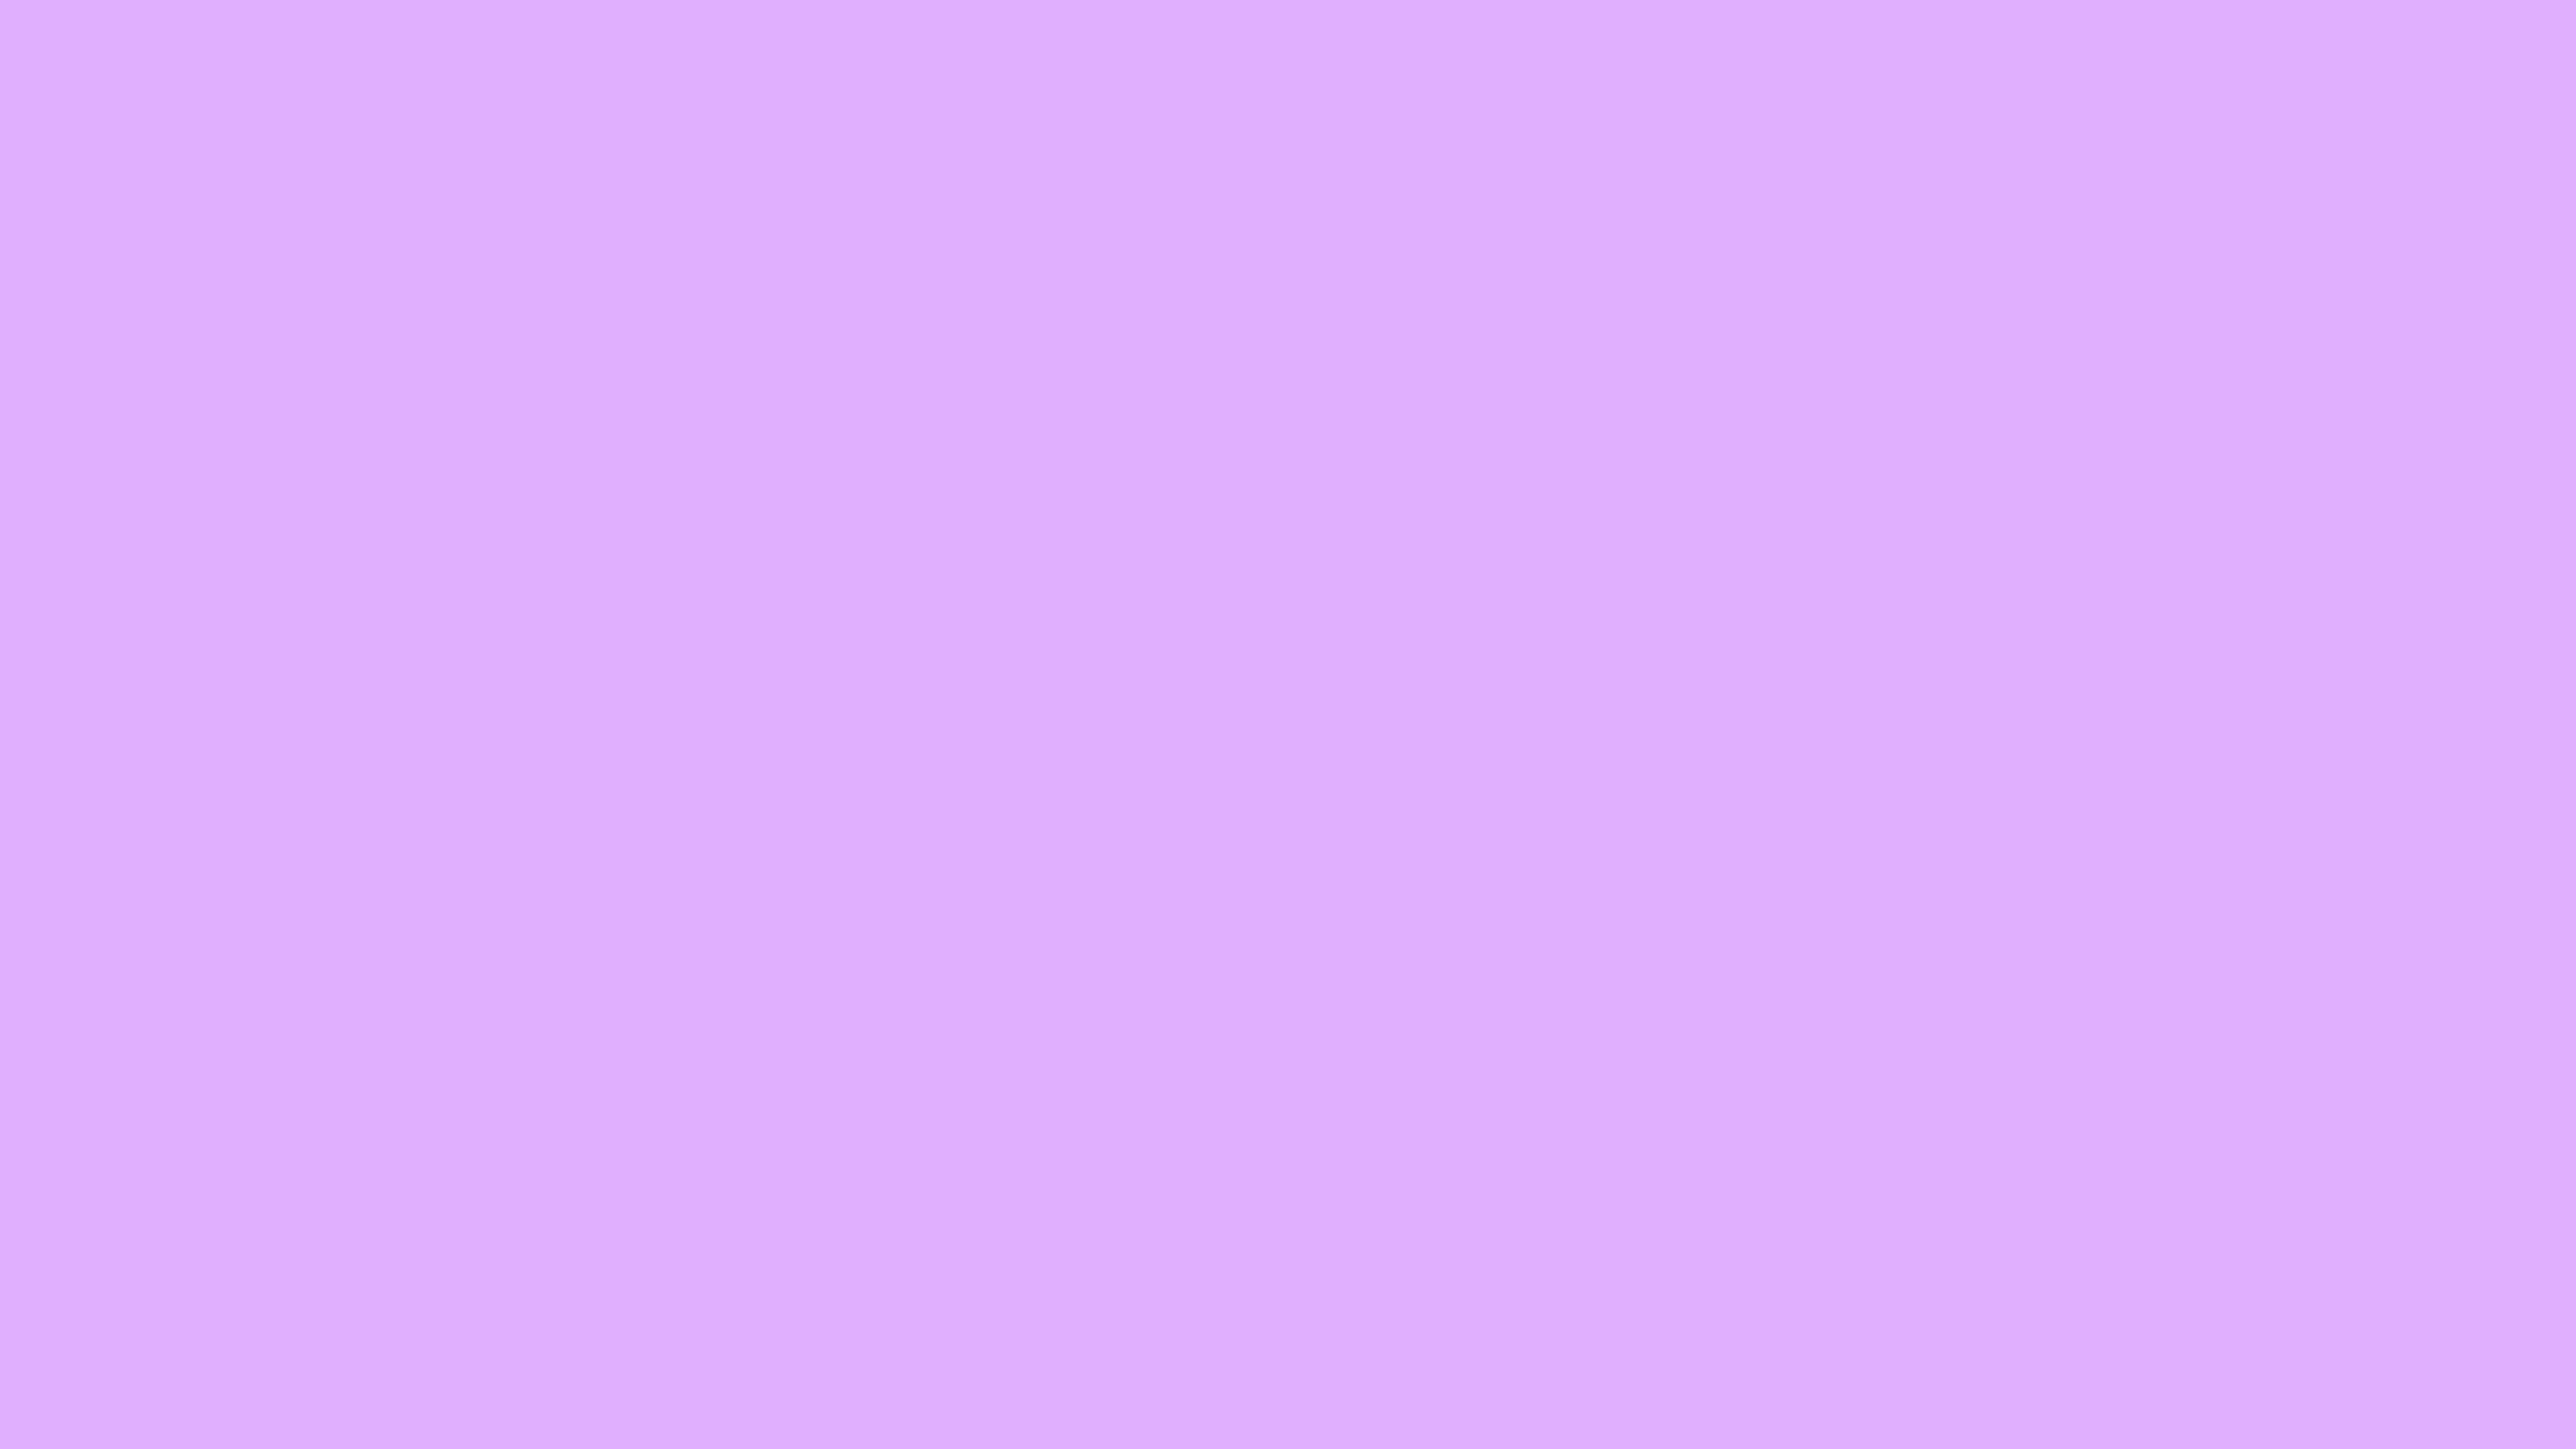 3840x2160 Mauve Solid Color Background